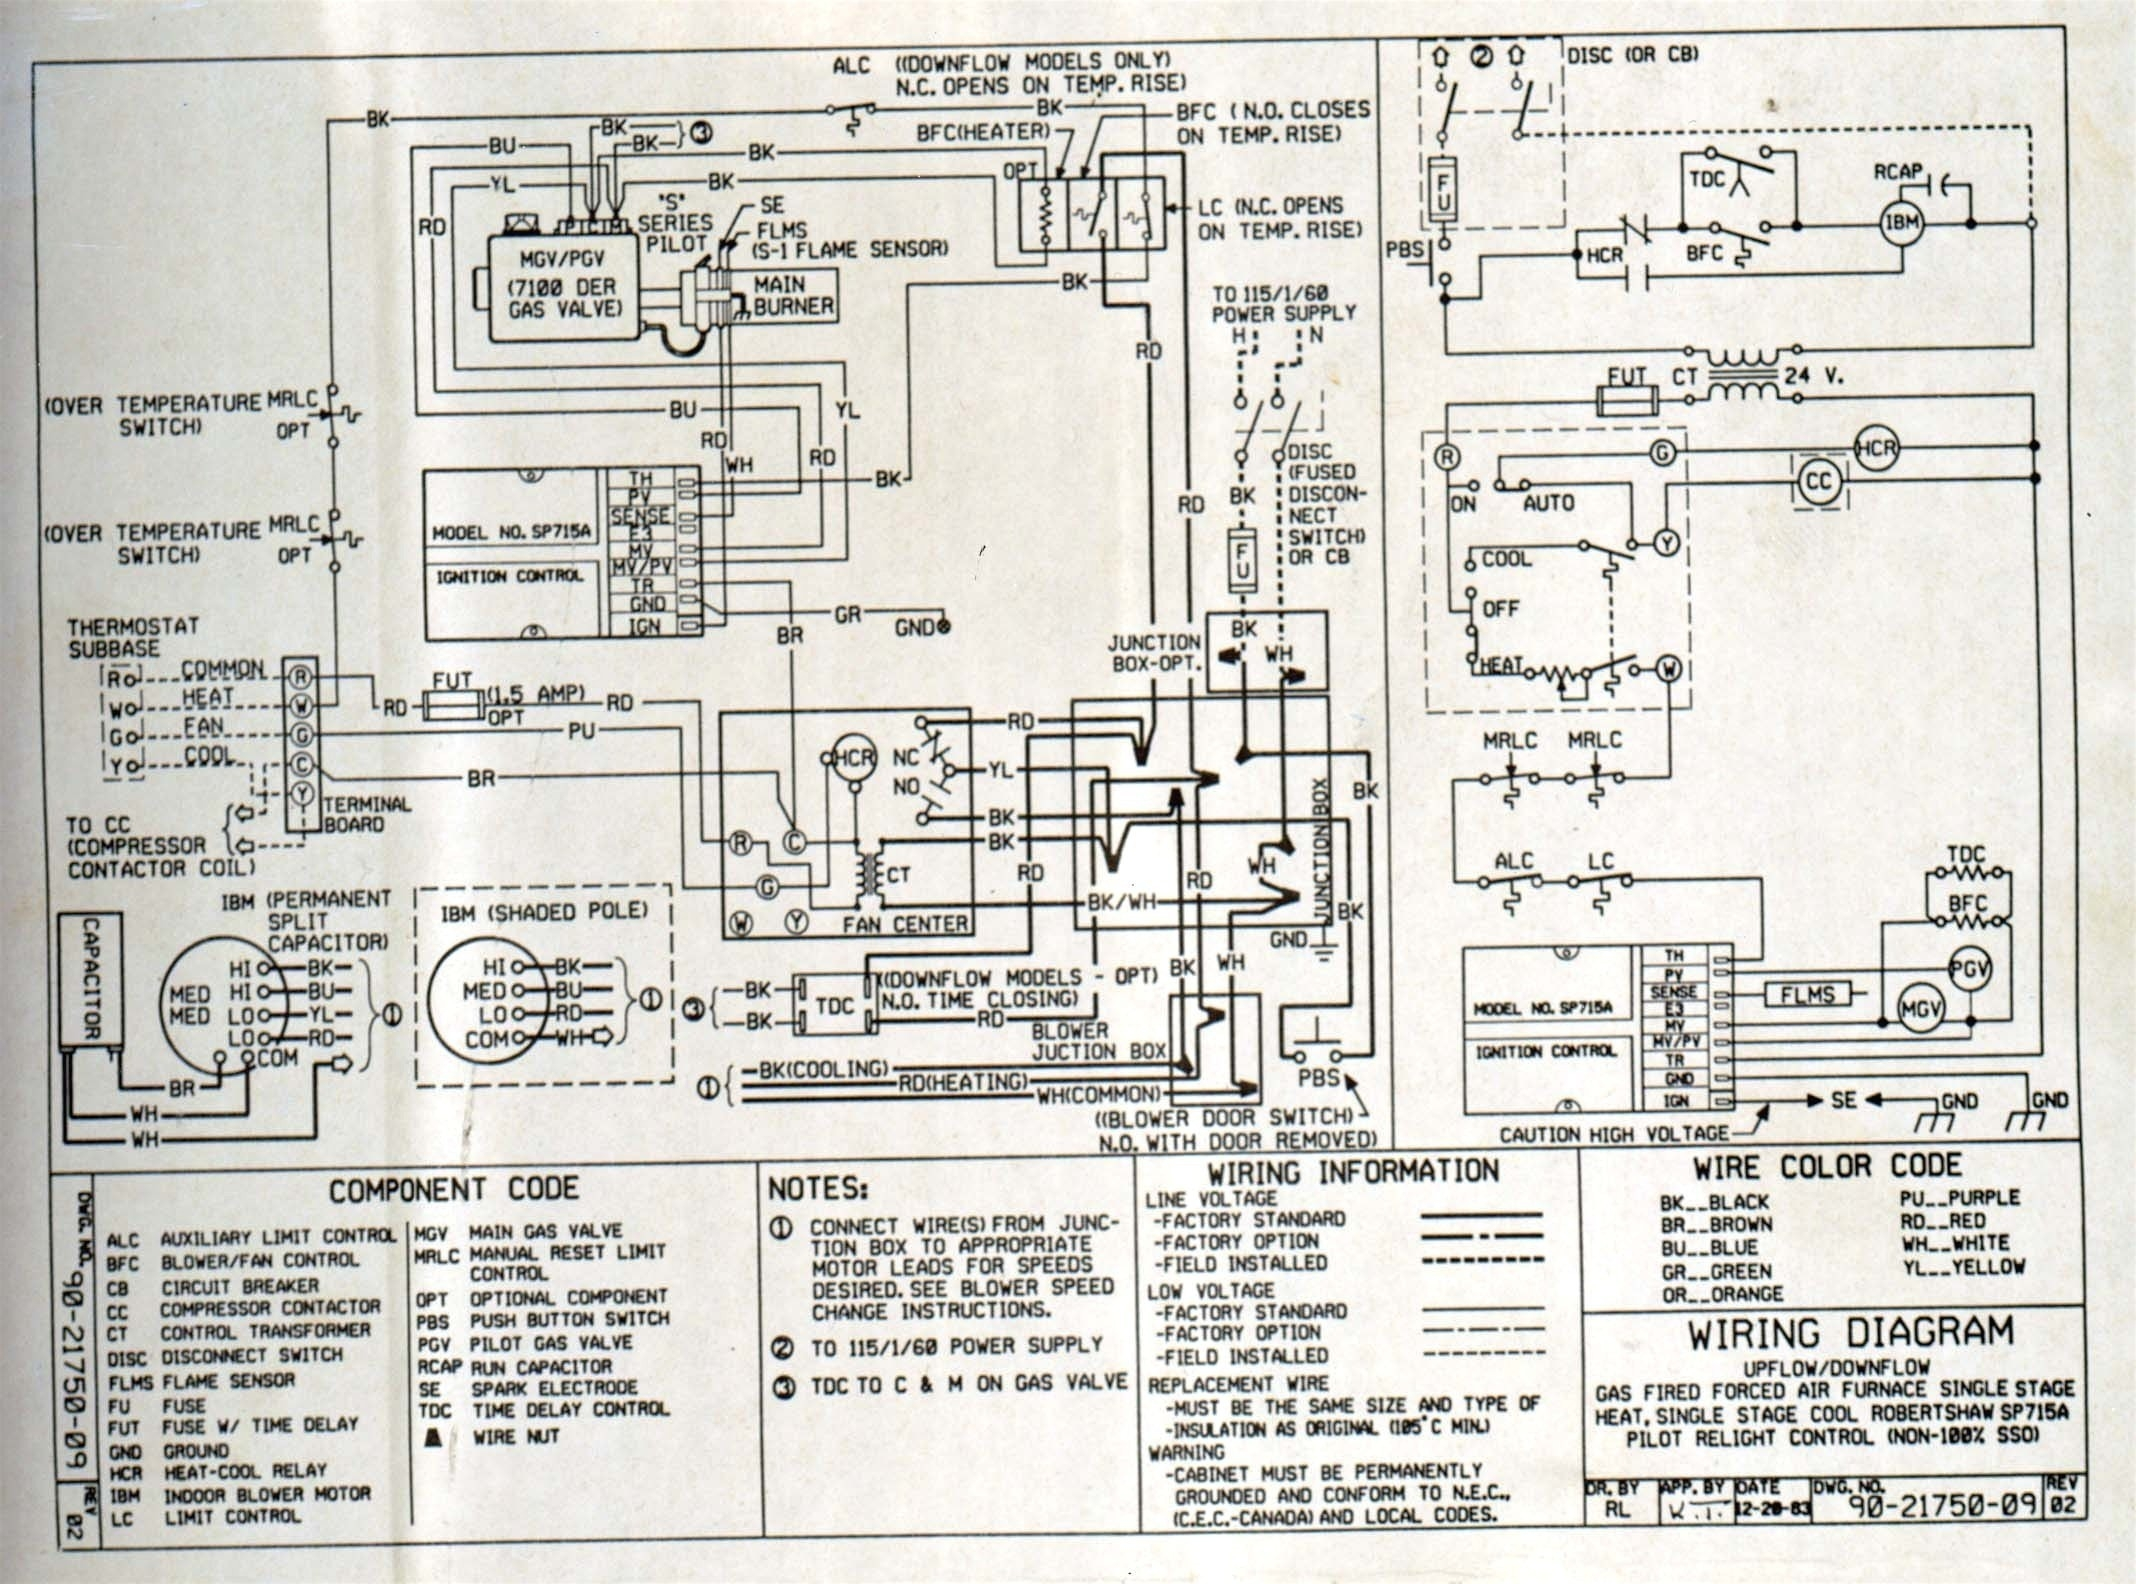 heat pump wiring diagram Download-Wiring Diagram Split System Heat Pump New Goodman Gas Pack Wiring Diagram Data Beautiful Heat Pump 17-n